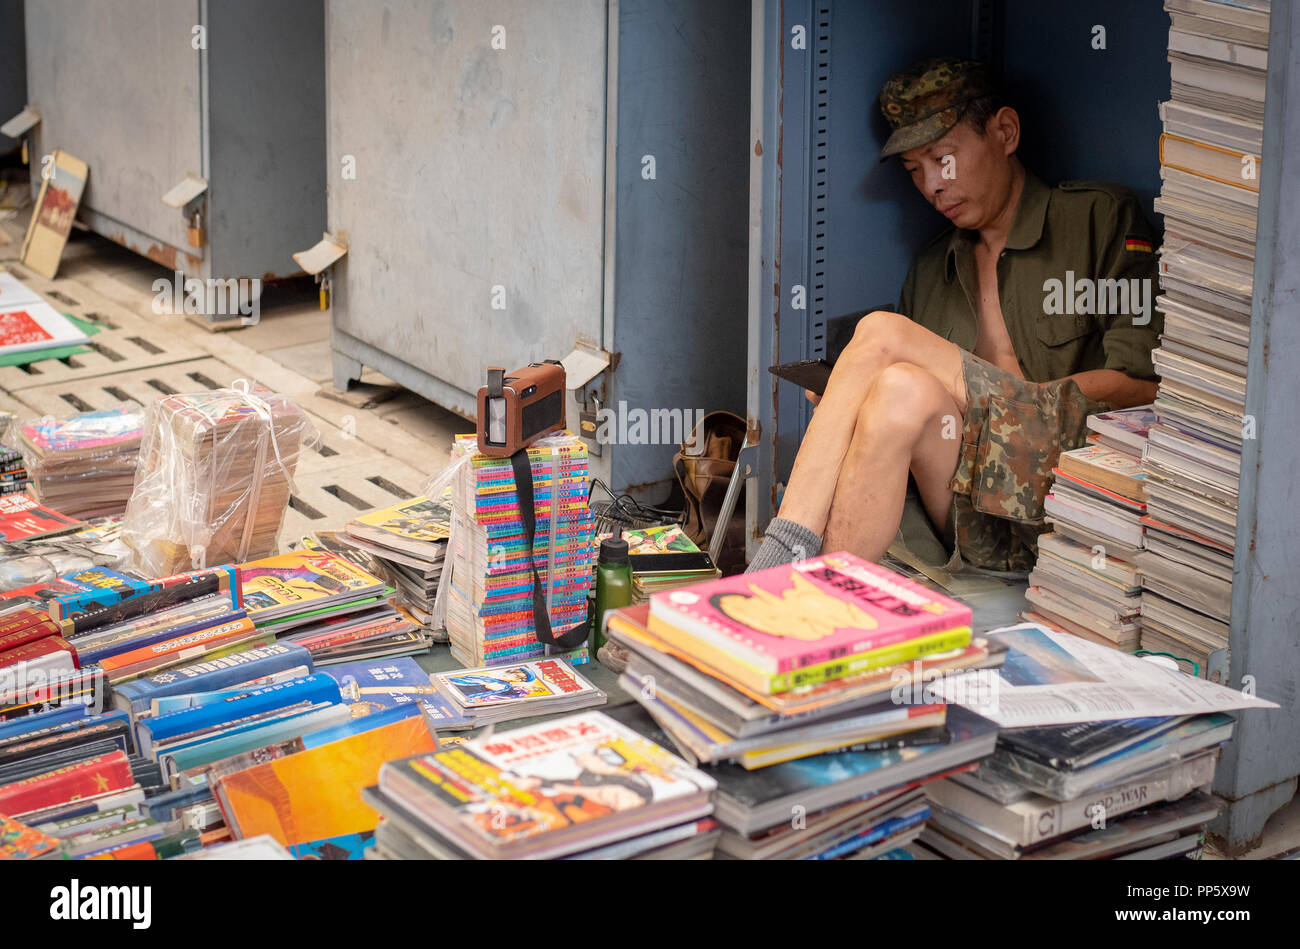 Chinese man working as a Book seller selling books and waiting for customer at an open book market in Beijing city, Chin - Stock Image